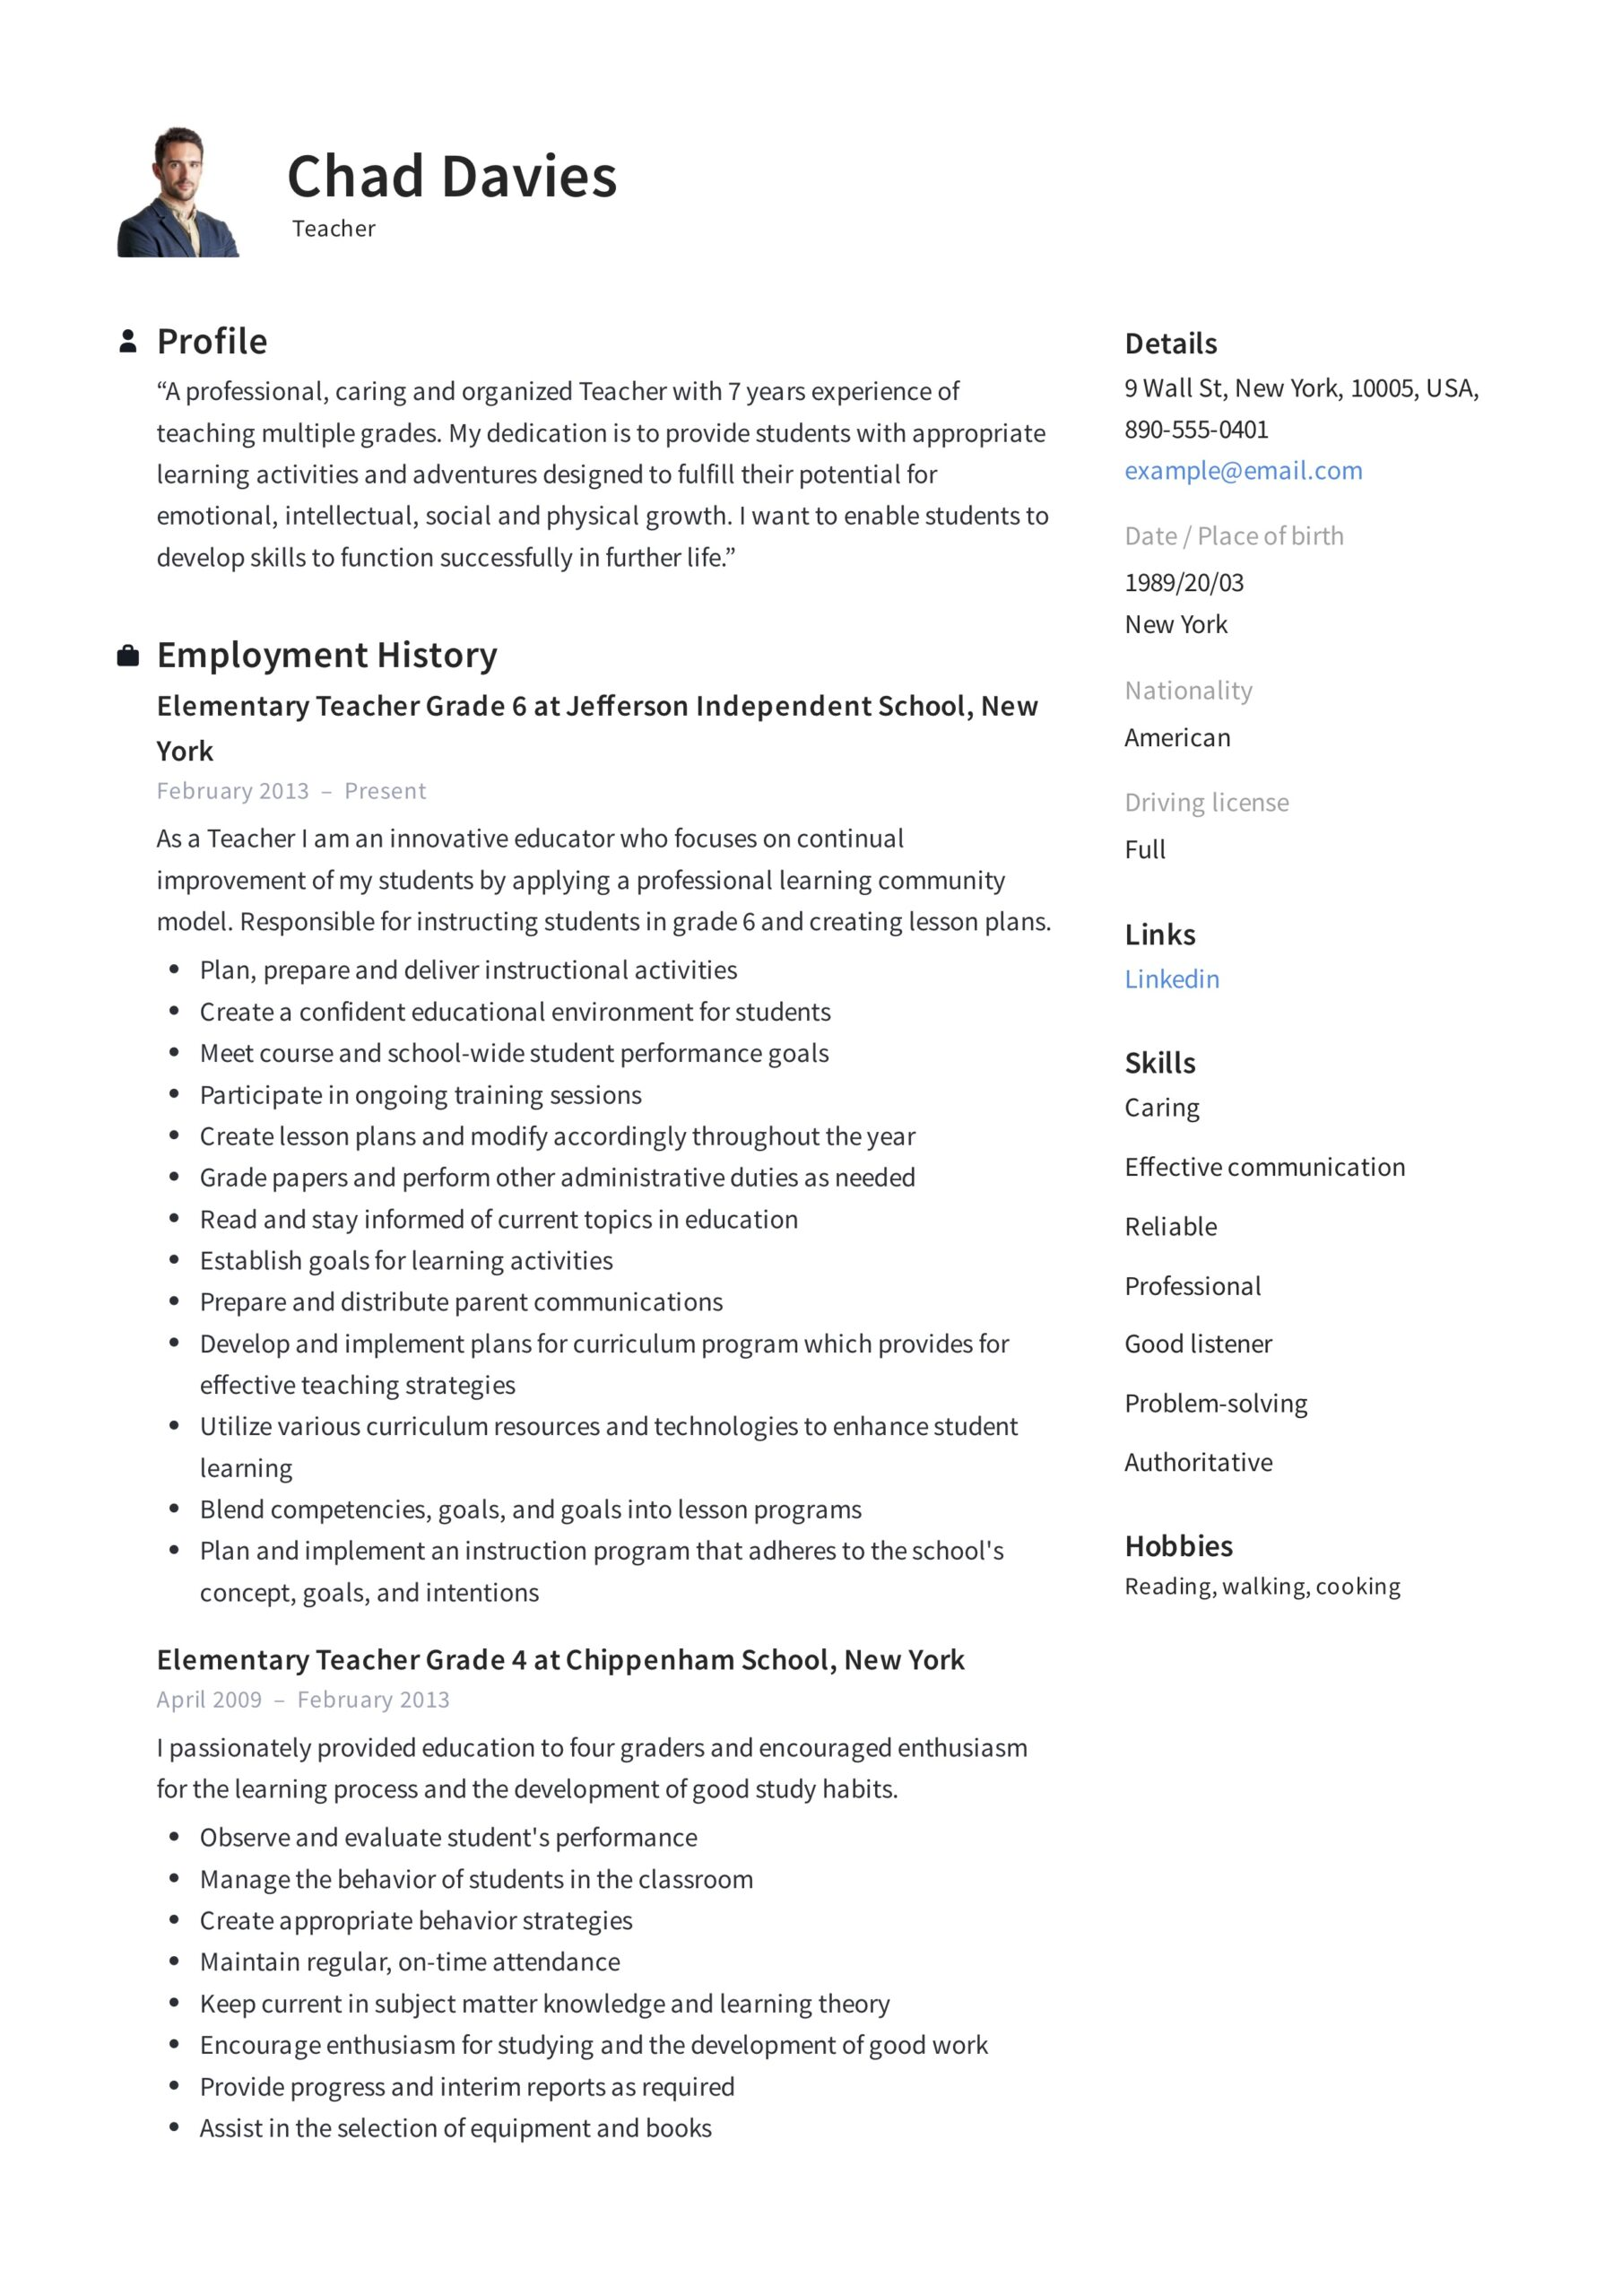 teacher resume writing guide examples pdf free sample for teachers elementary follow up Resume Free Sample Resume For Teachers